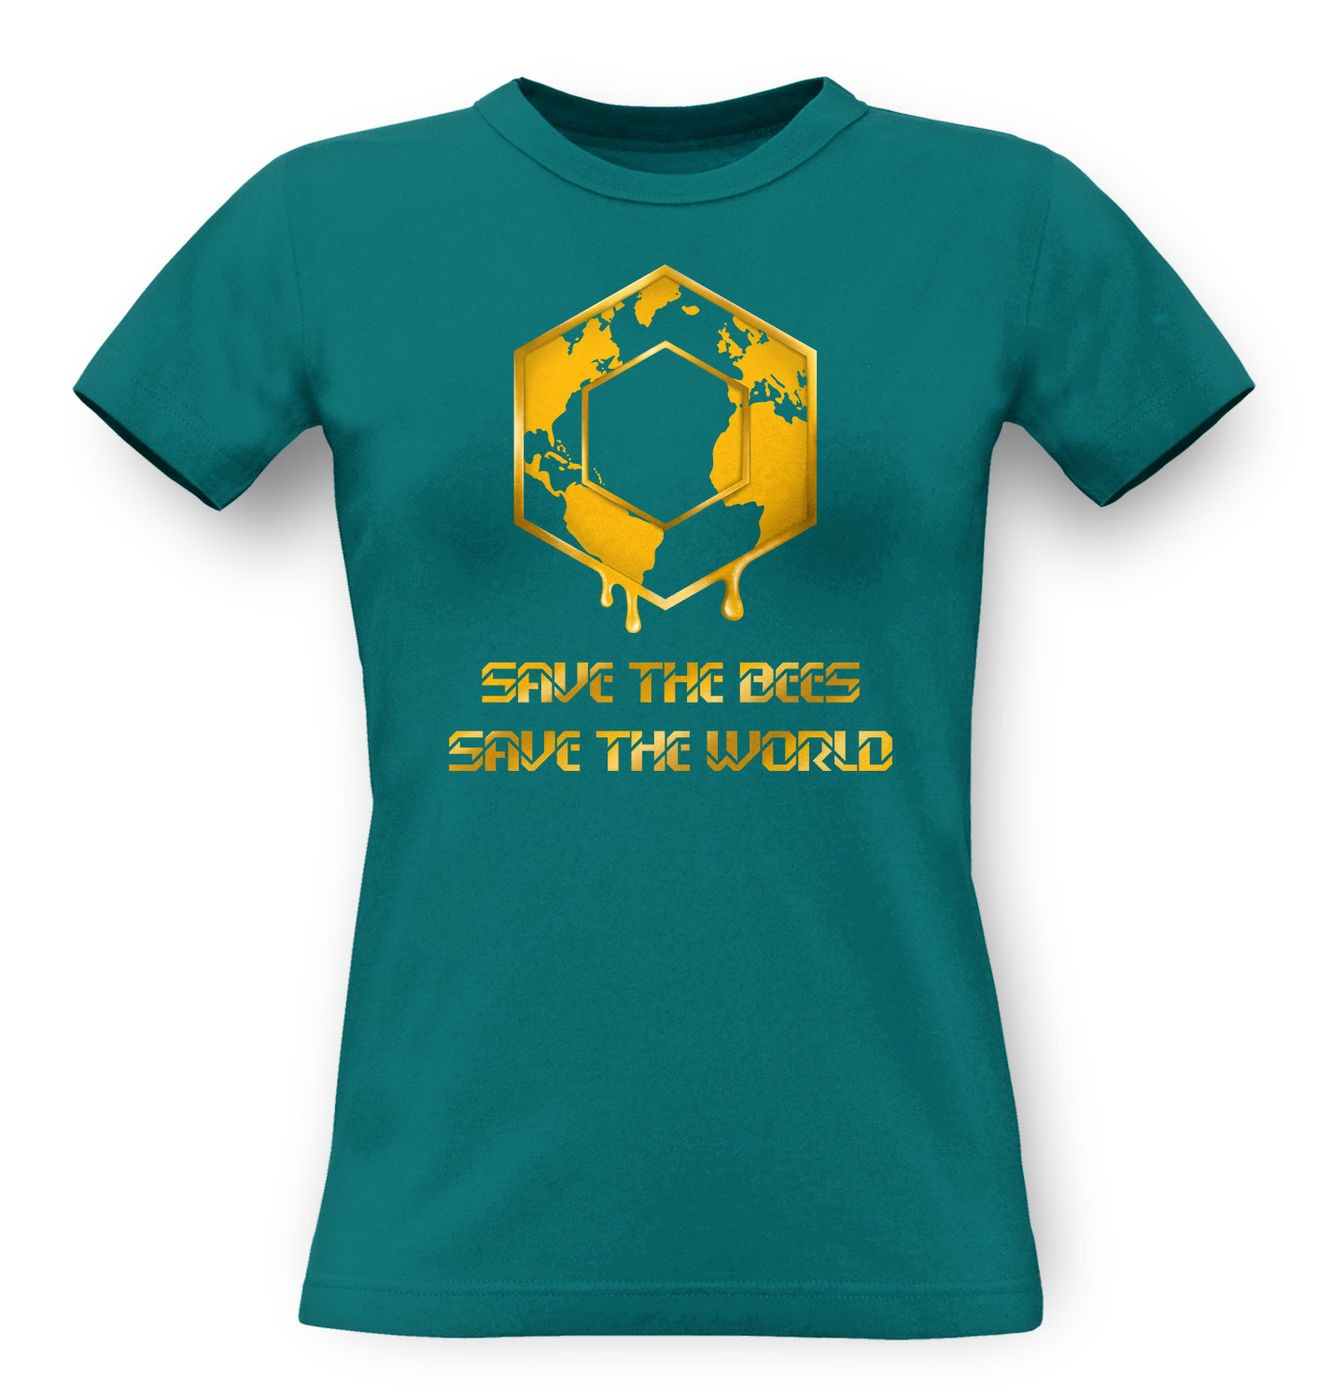 Save The Bees classic women's t-shirt by Something Geeky